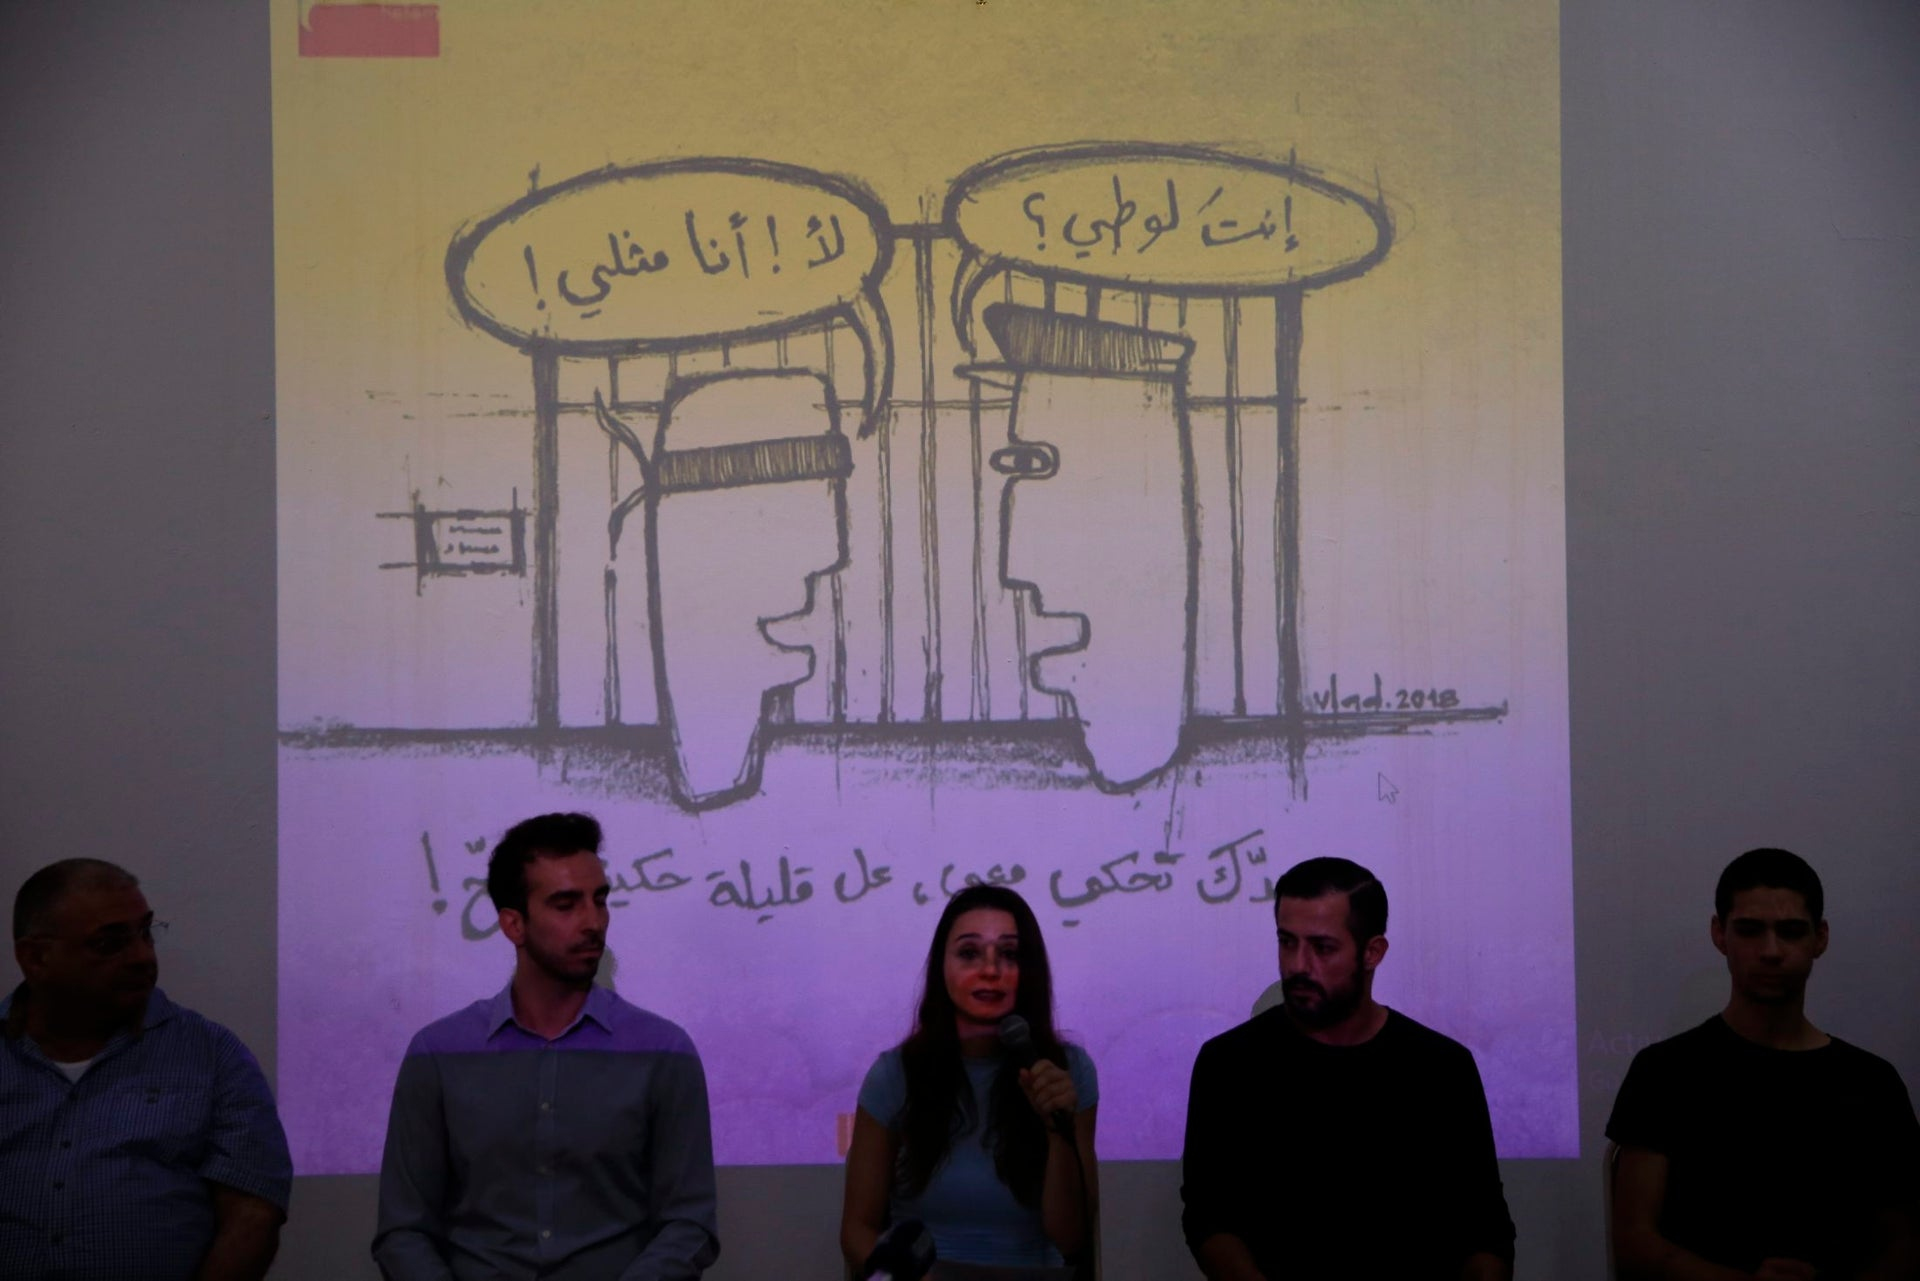 """This picture taken Thursday, May 17, 2018, shows members of Lebanon's pioneering LBGT advocacy group Helem or dream speak during a press conference in Beirut, Lebanon.   Arabic on wall reads """"Are you a sodomite? No I am homosexual, up,. If you want to talk to me, at least do it properly.""""  Lebanonג€™s relative tolerance emerges in part from its sectarian and ethnic diversity. Despite tensions, no one group is strong enough to impose its will, and people are forced to recognize others to a degree. That has opened up a greater freedom of press, expression and activism than elsewhere in the region."""